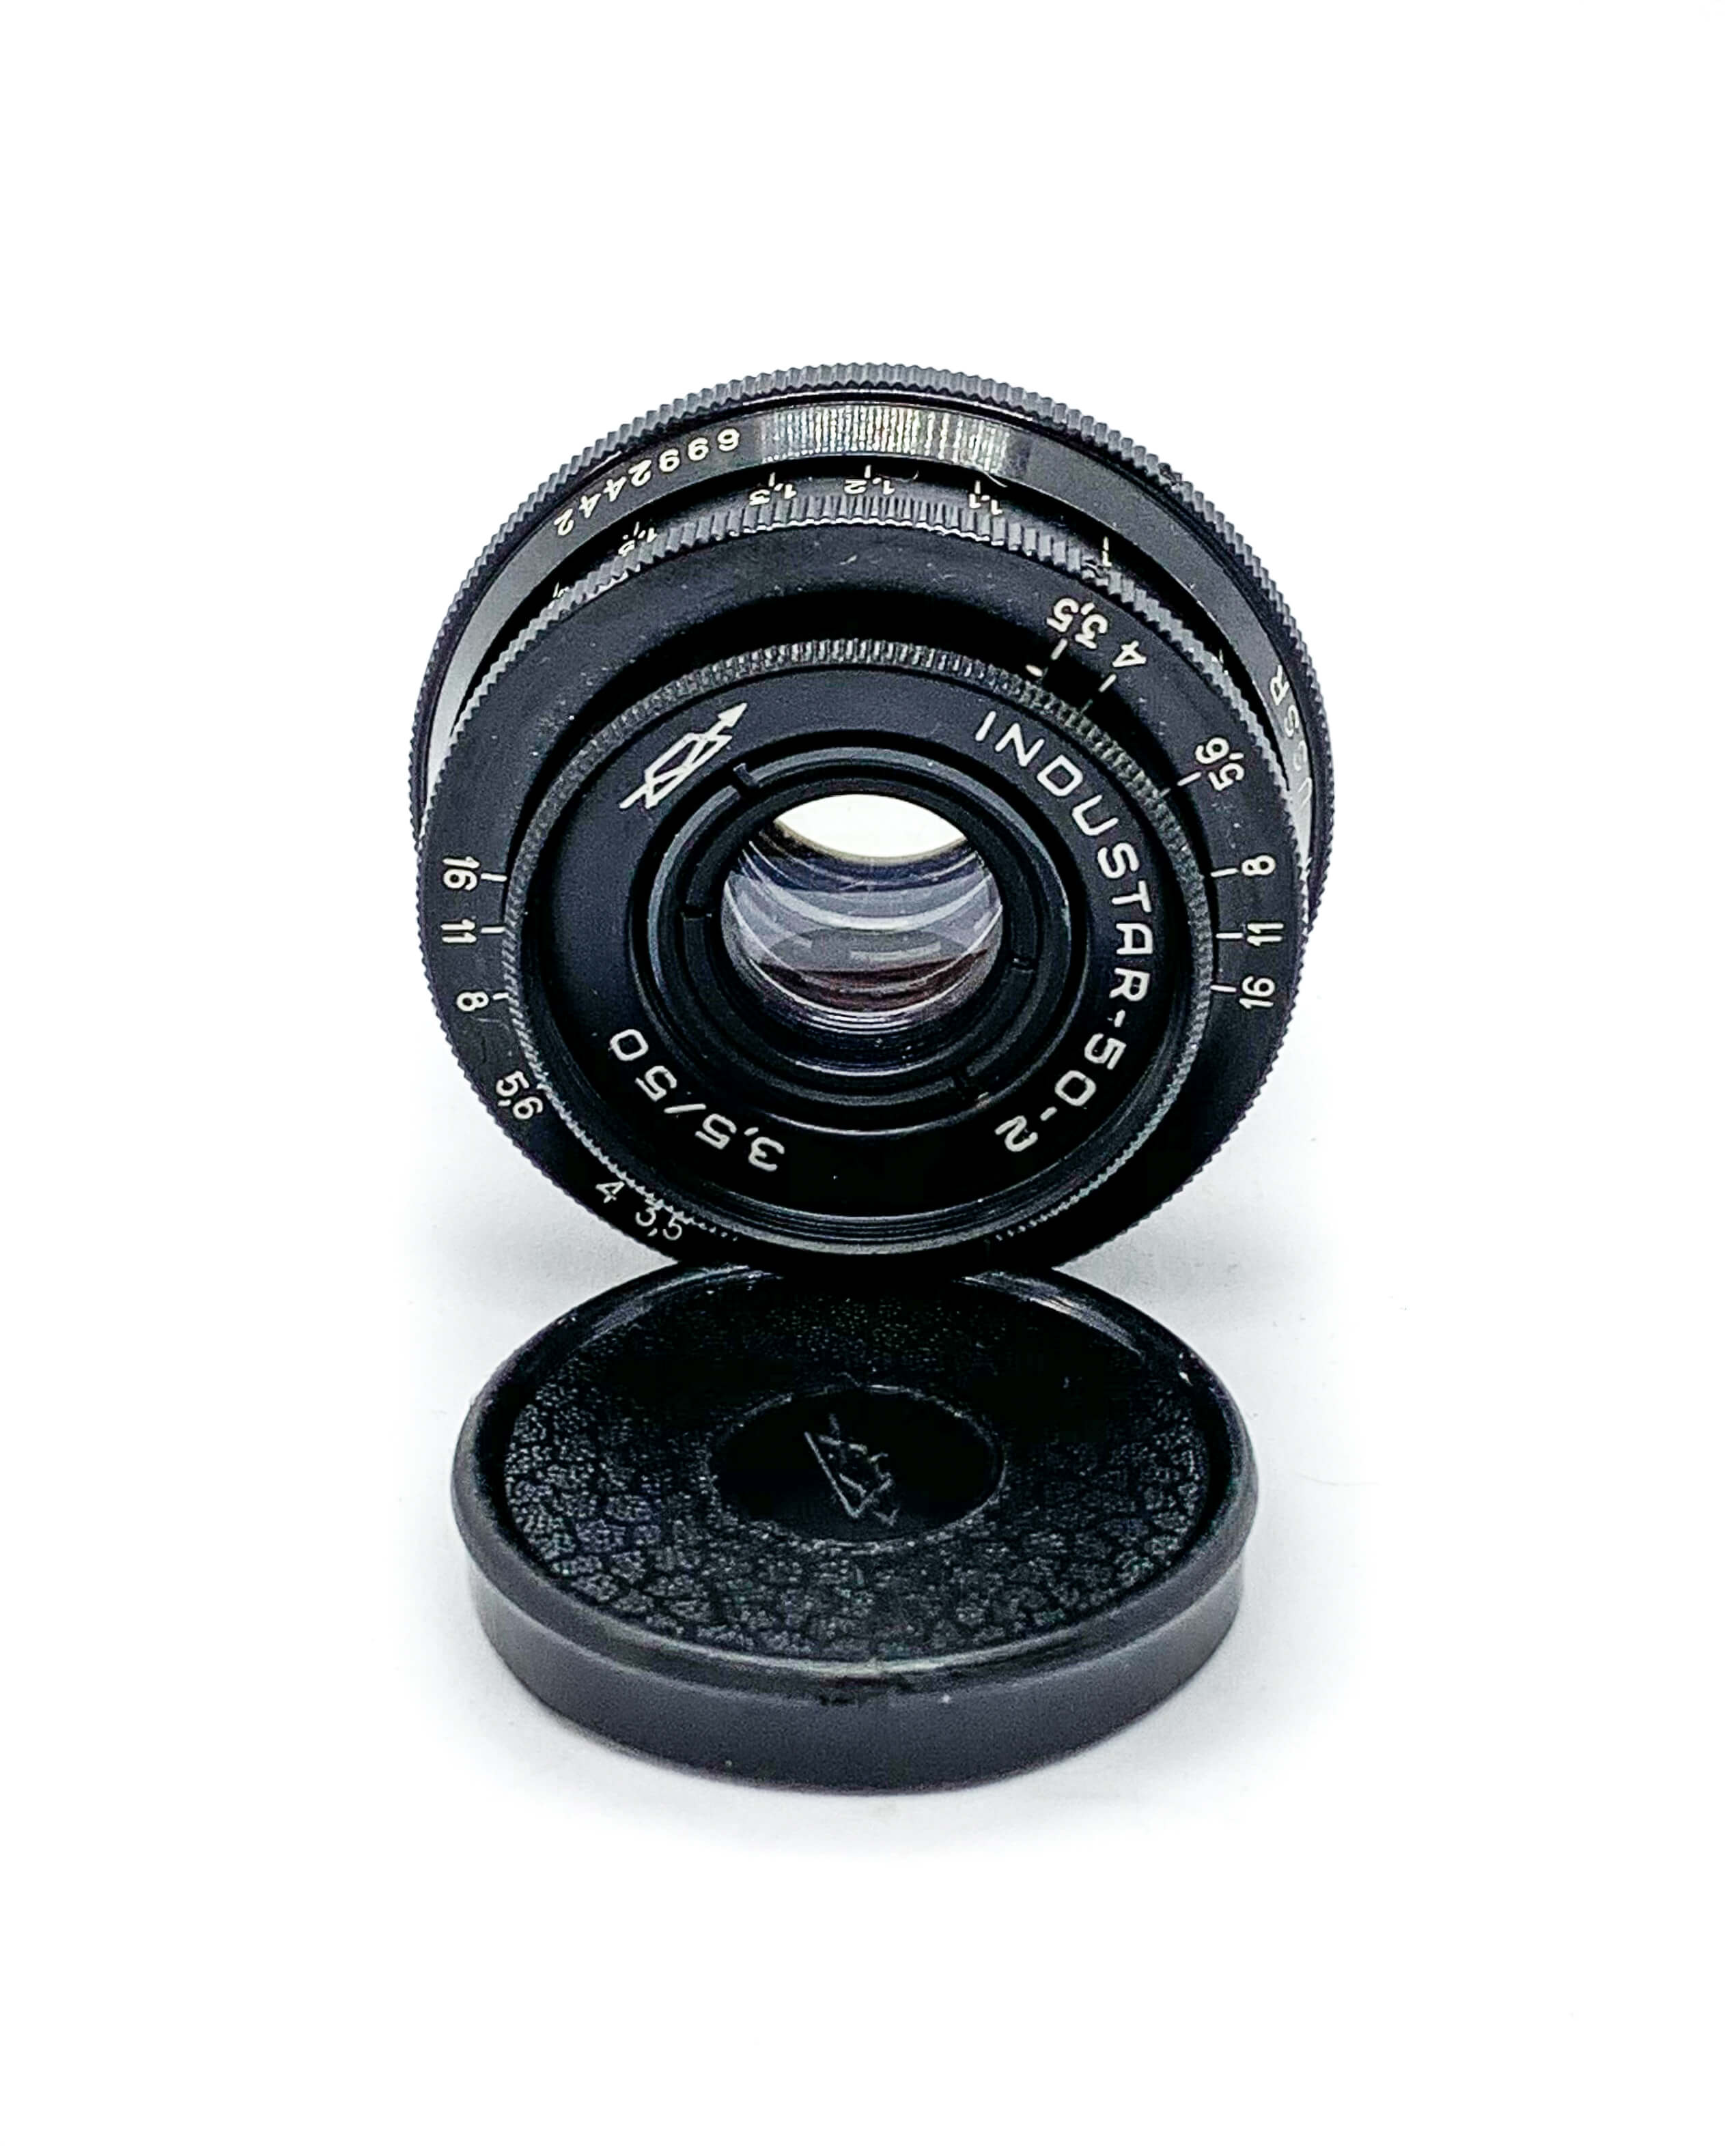 Industar 50mm lens on white background